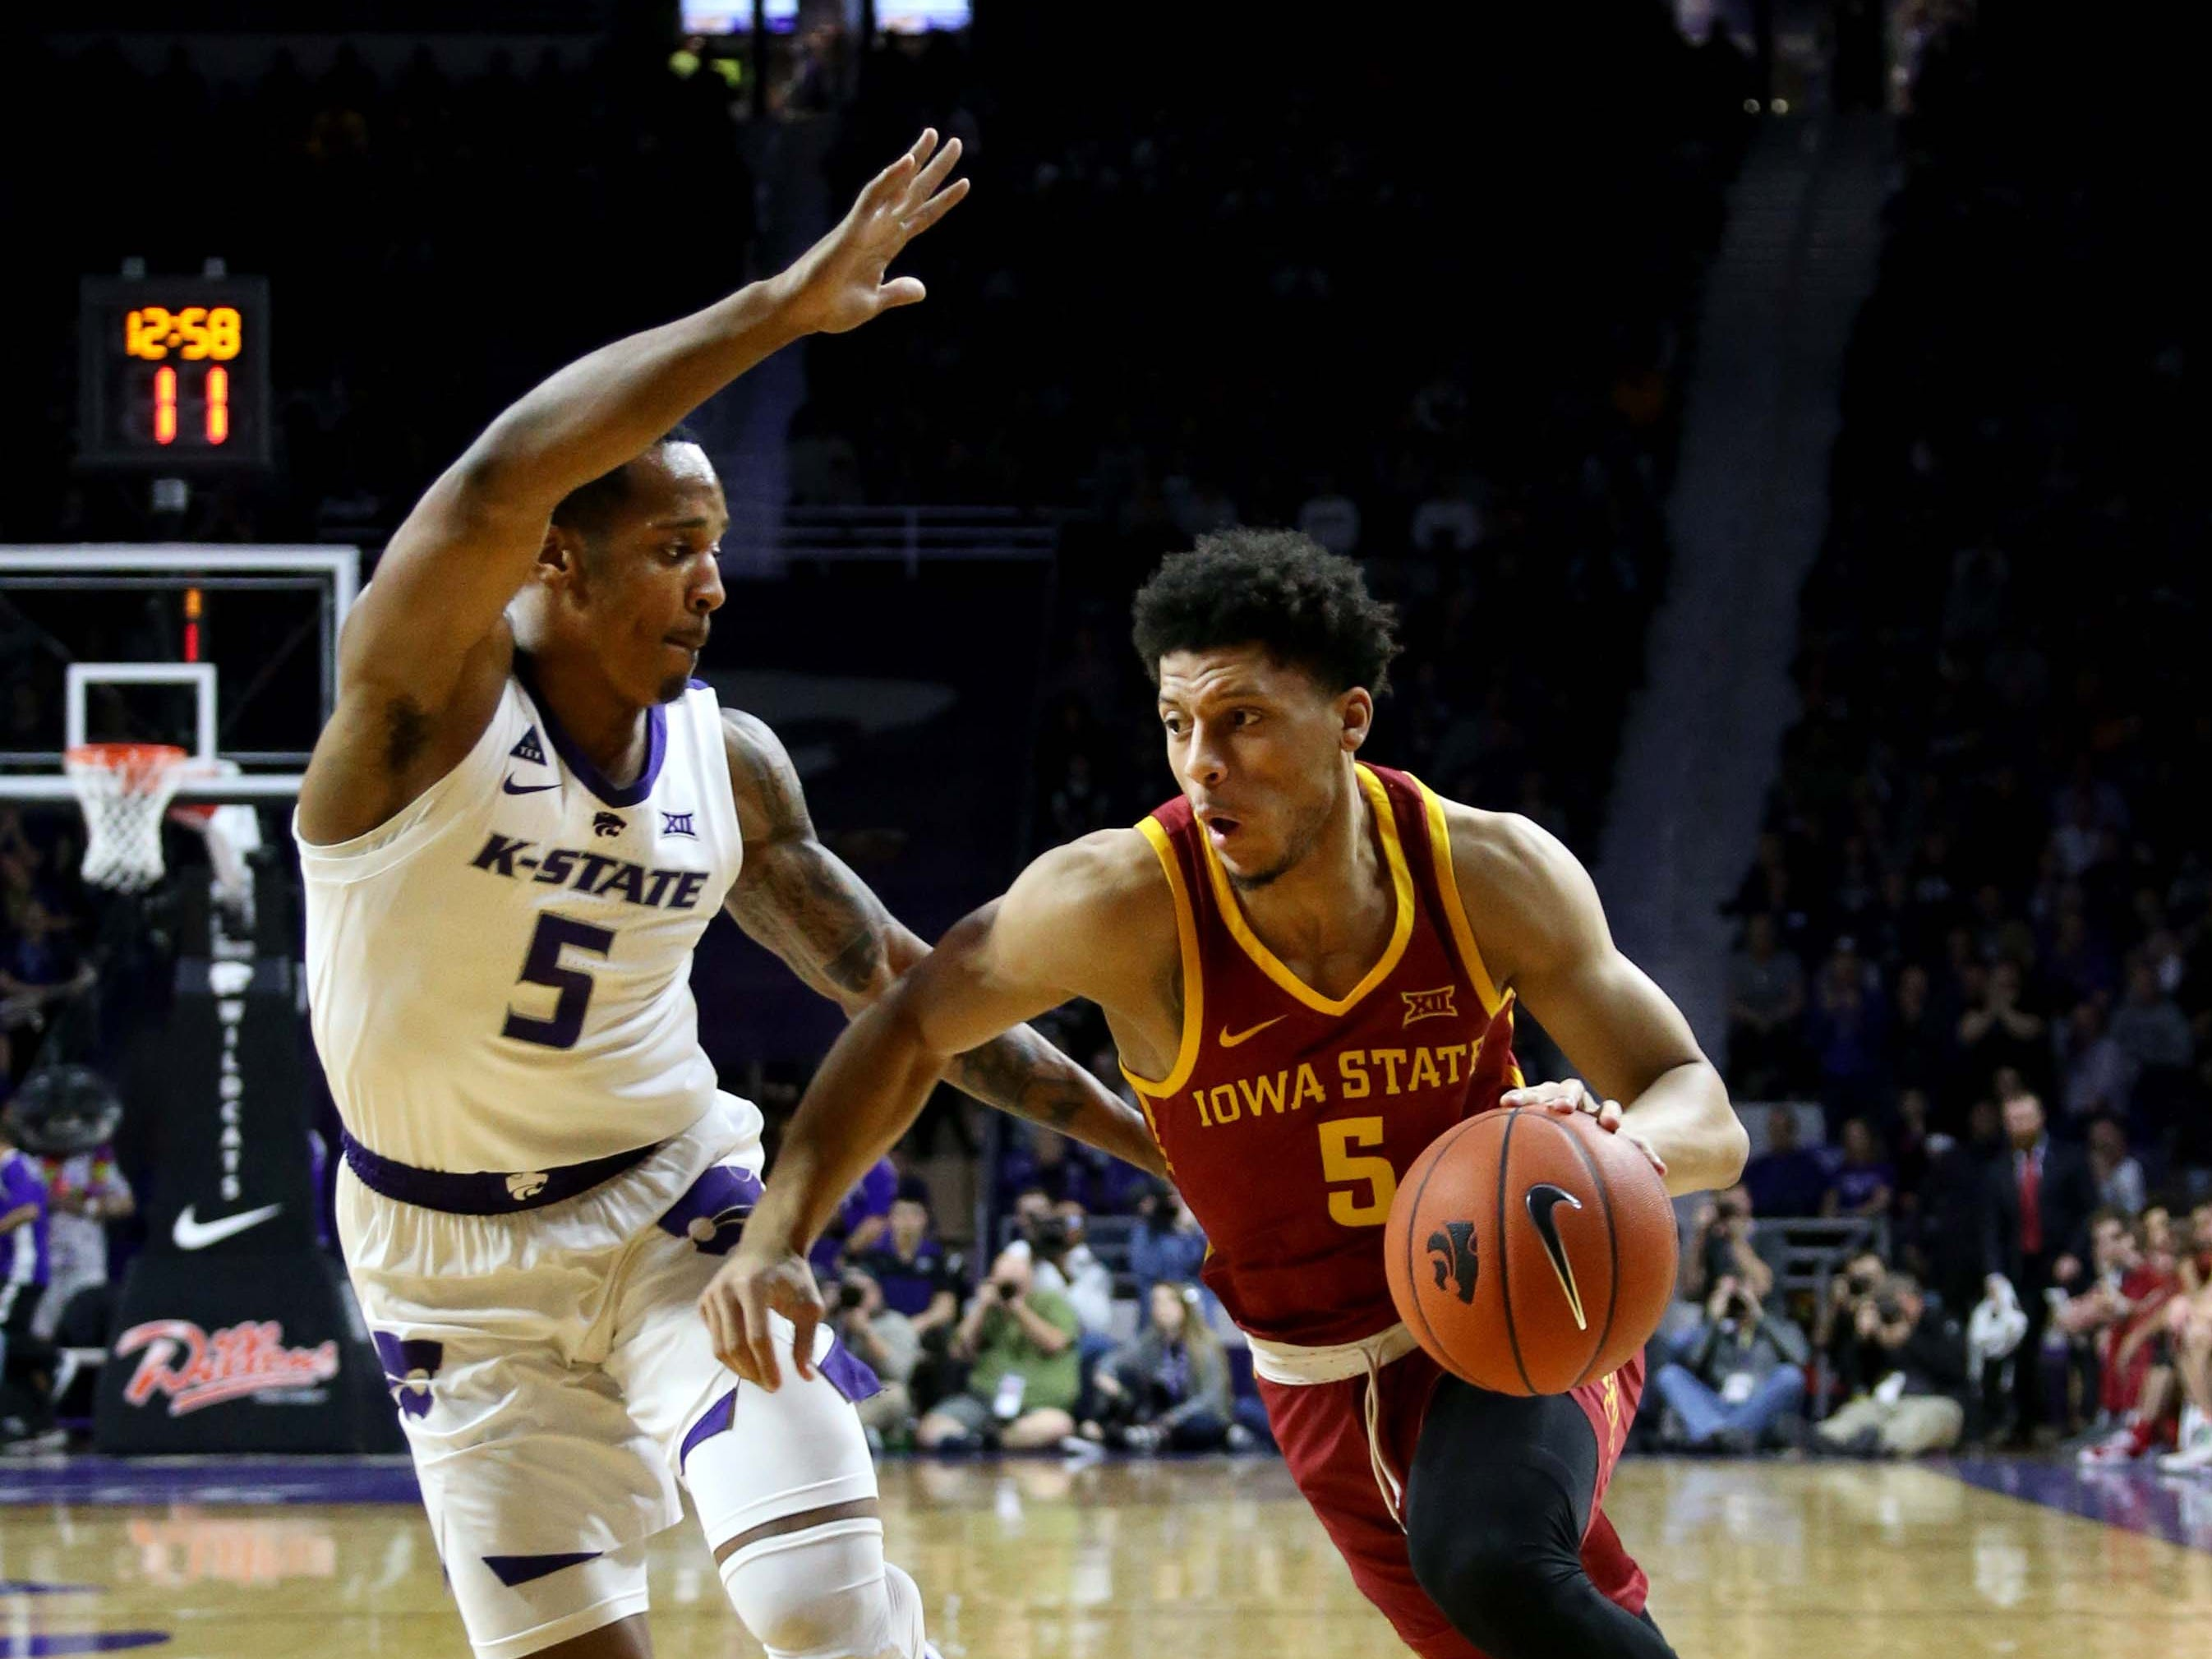 Feb 16, 2019; Manhattan, KS, USA; Iowa State Cyclones guard Lindell Wigginton (5) dribbles by Kansas State Wildcats guard Barry Brown (5) during the first half at Bramlage Coliseum.